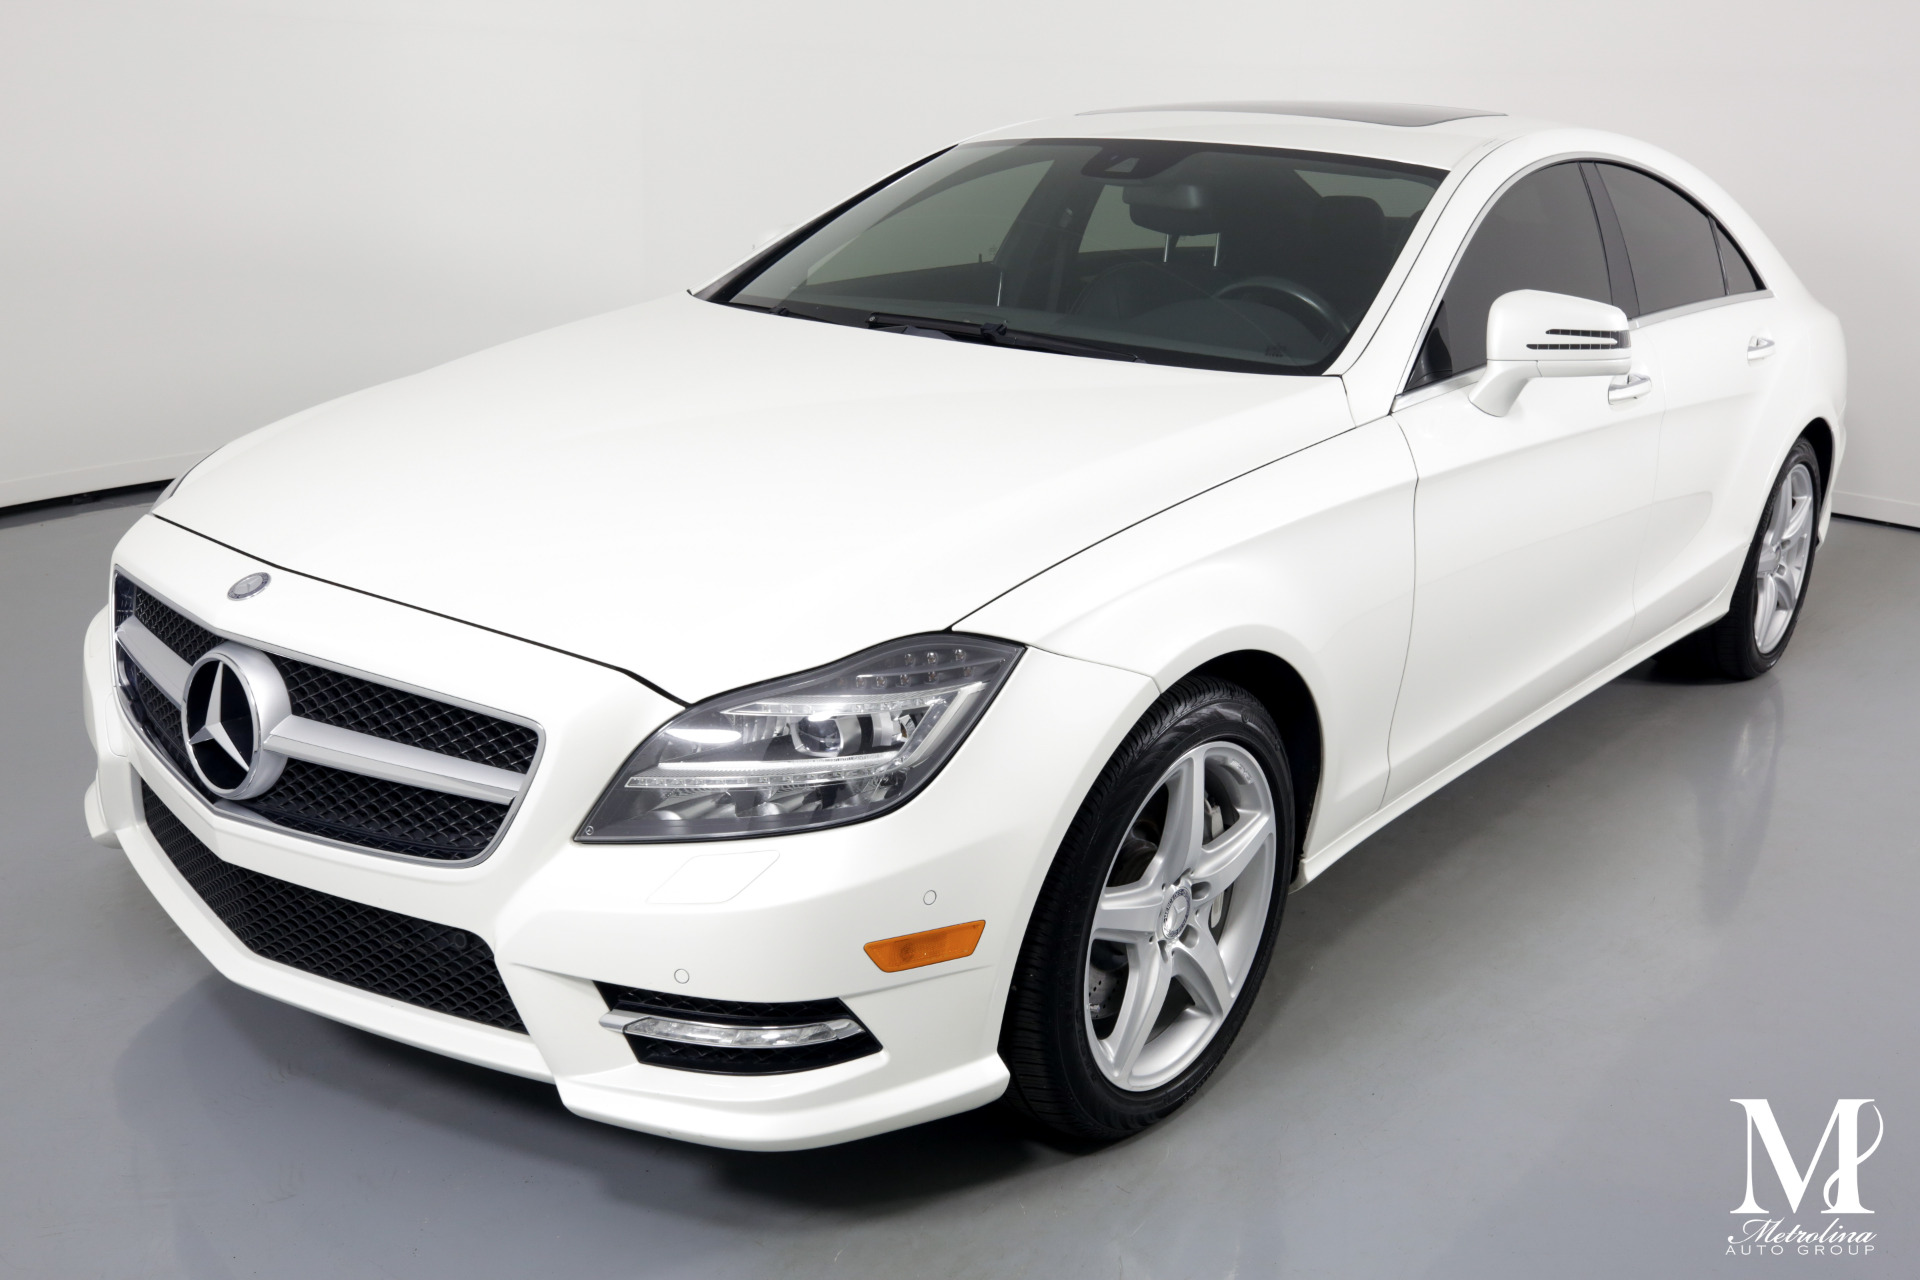 Used 2014 Mercedes-Benz CLS CLS 550 for sale Sold at Metrolina Auto Group in Charlotte NC 28217 - 4